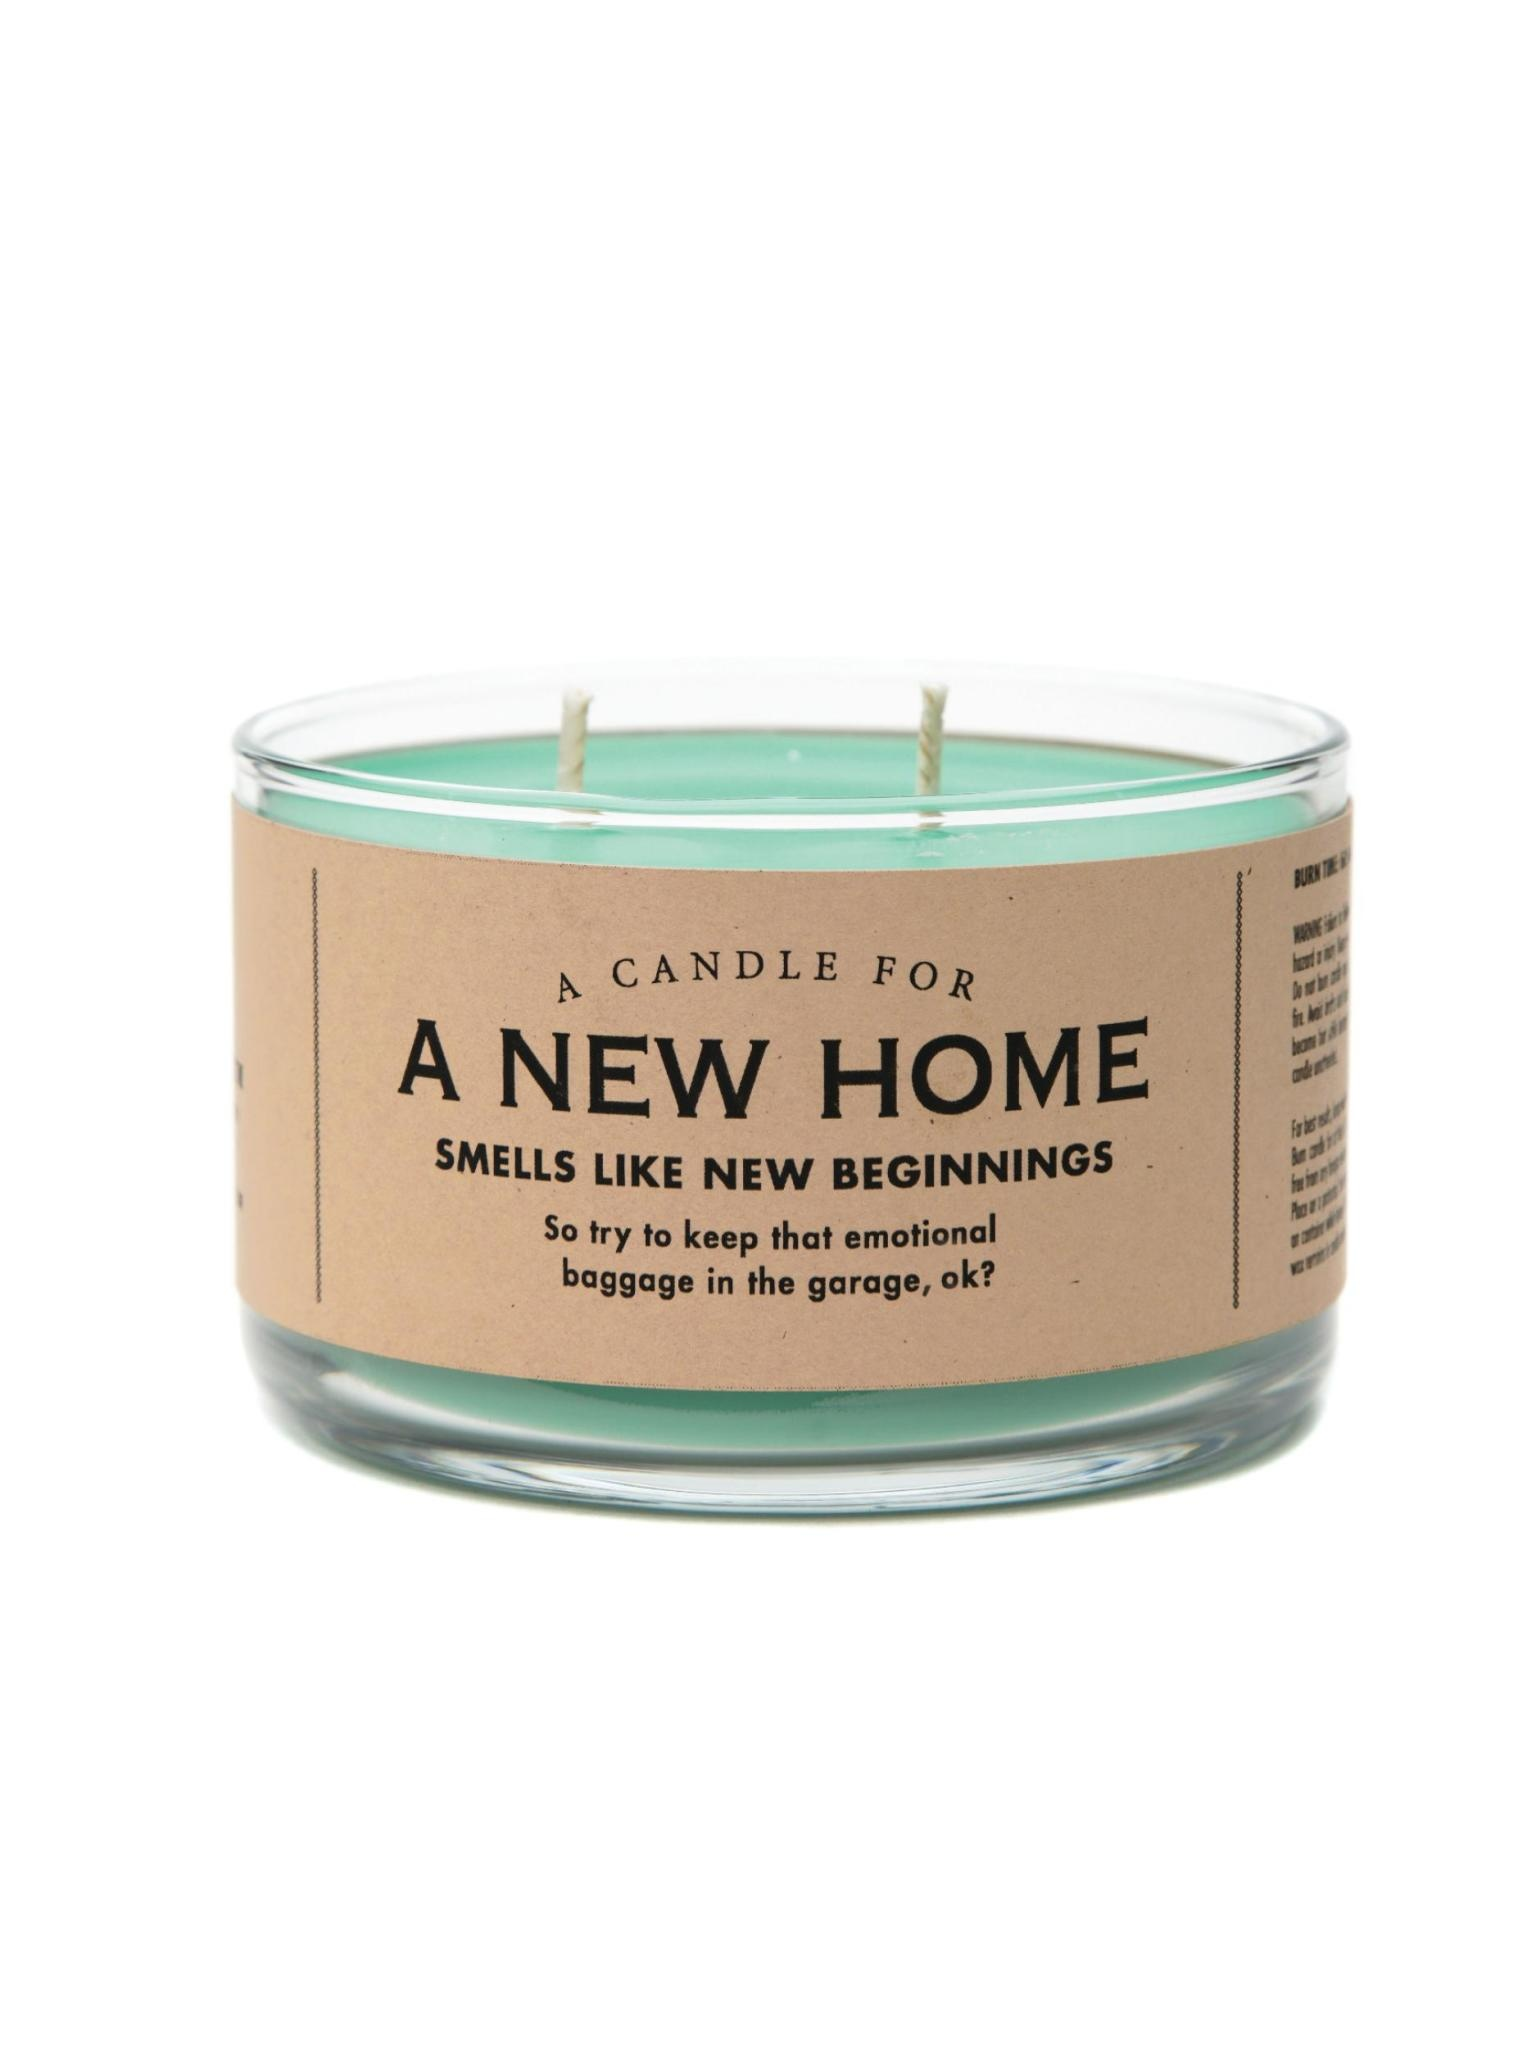 Whiskey River Soap Co. A New Home Candle 17 oz